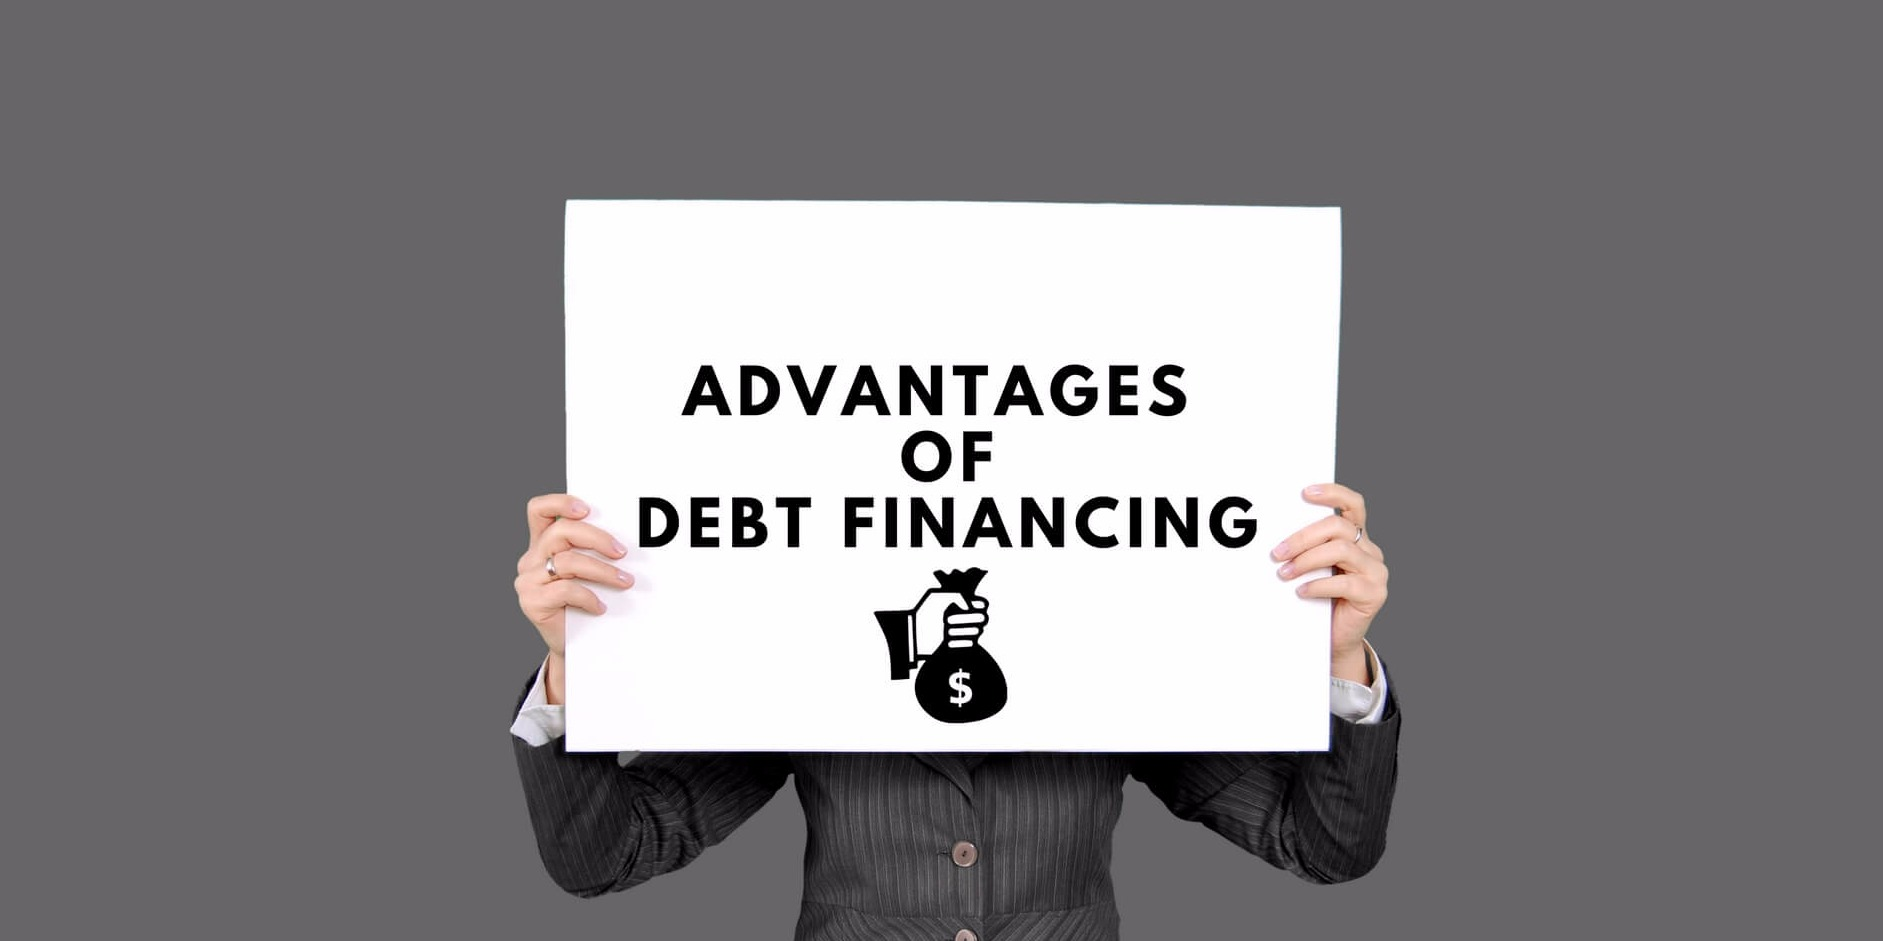 advantage of debt financing Access to capital is often a barrier for small businesses that's why it's important to understand the advantages and disadvantages of debt financing.